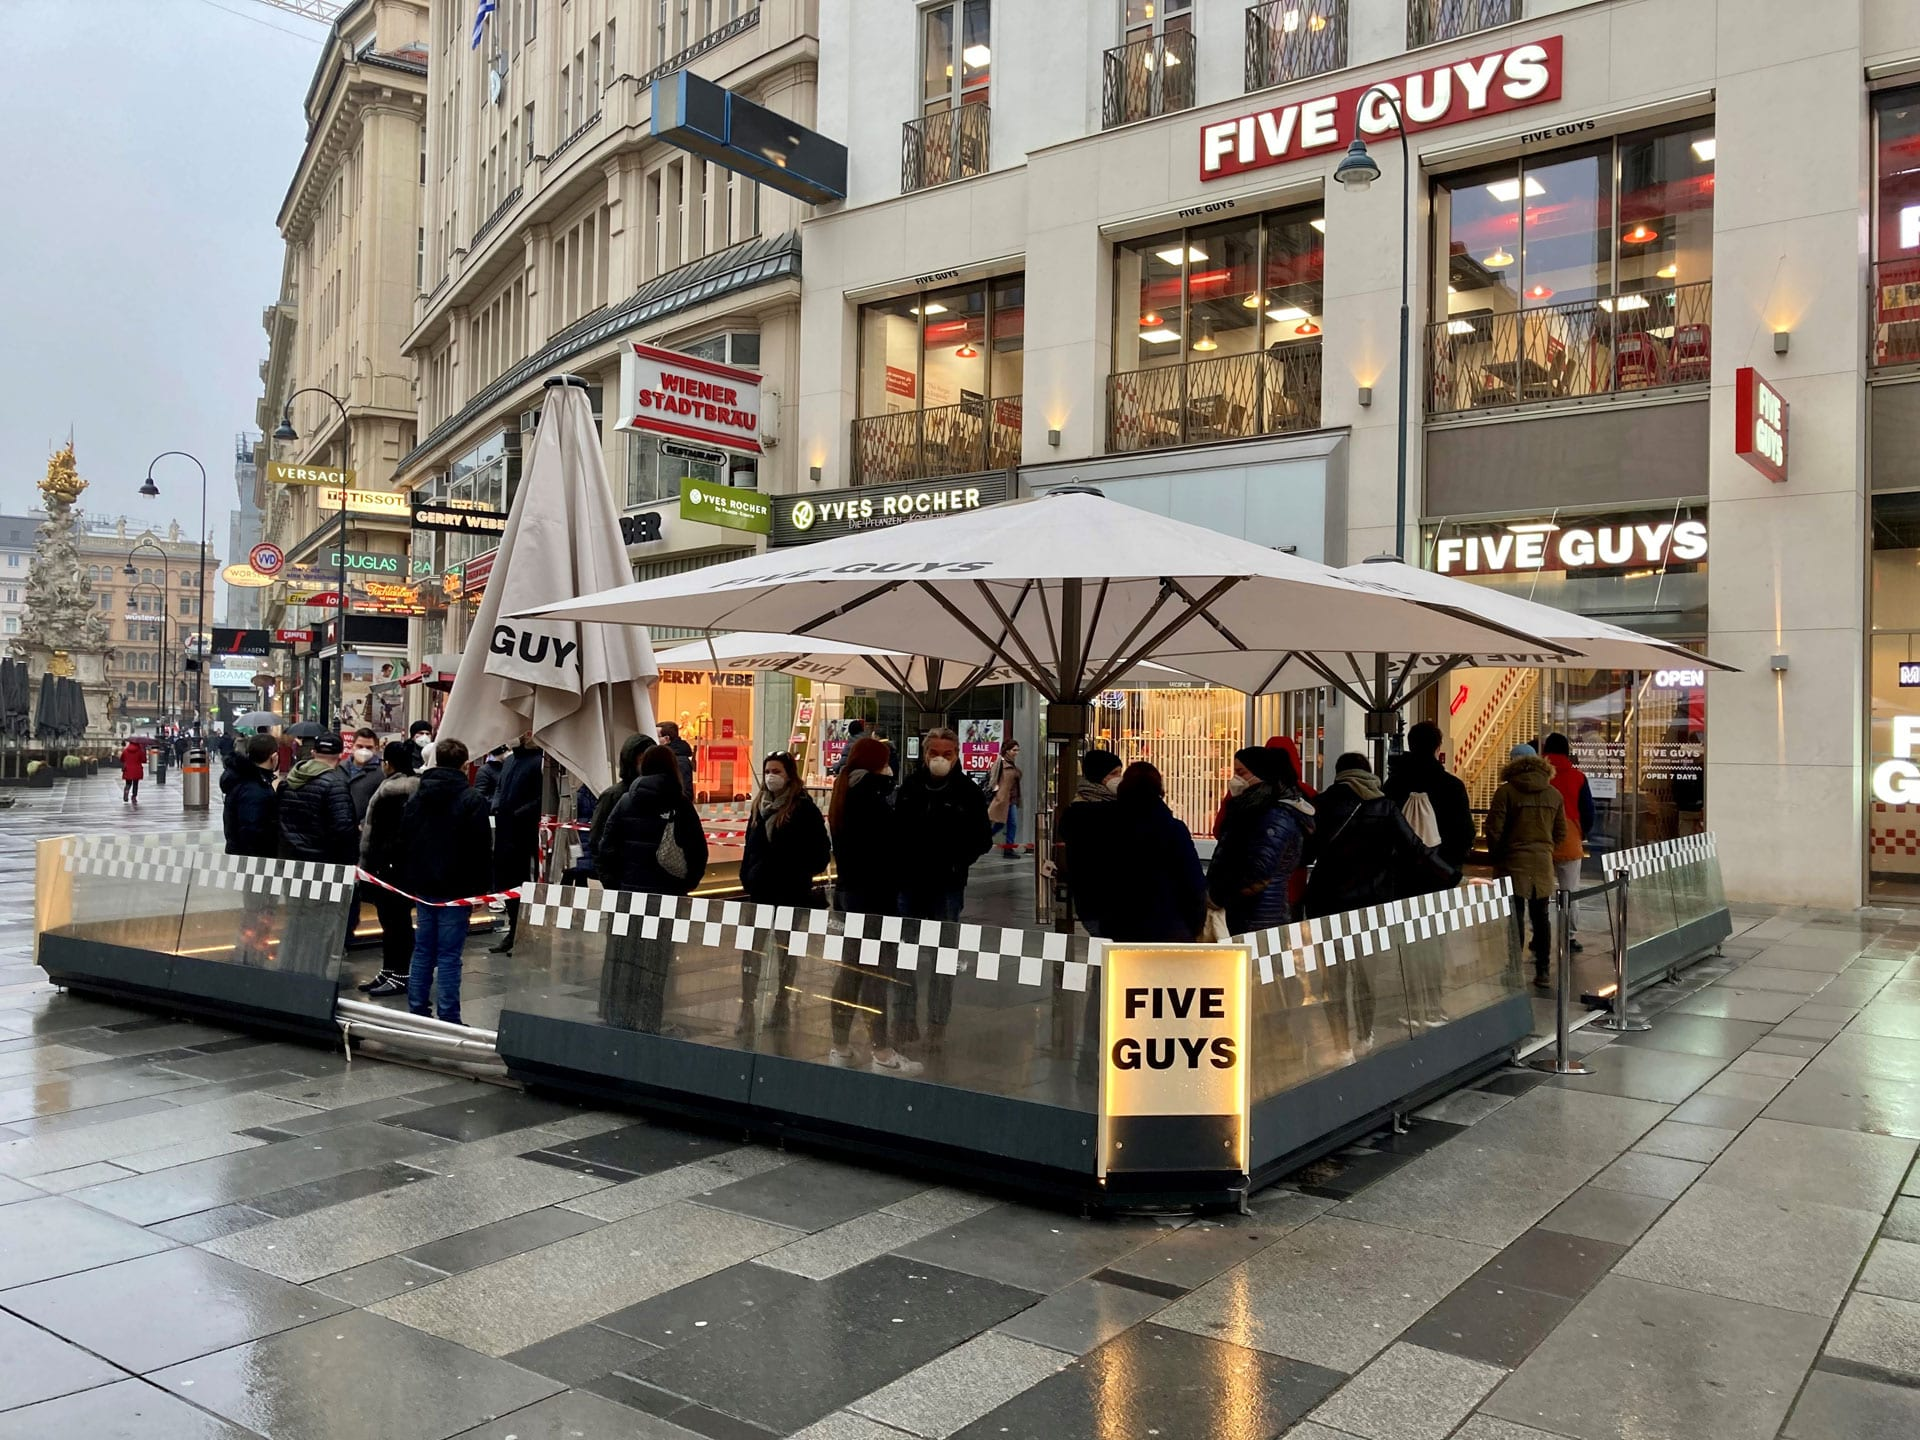 Grayling launcht Burgerkette FIVE GUYS in Österreich